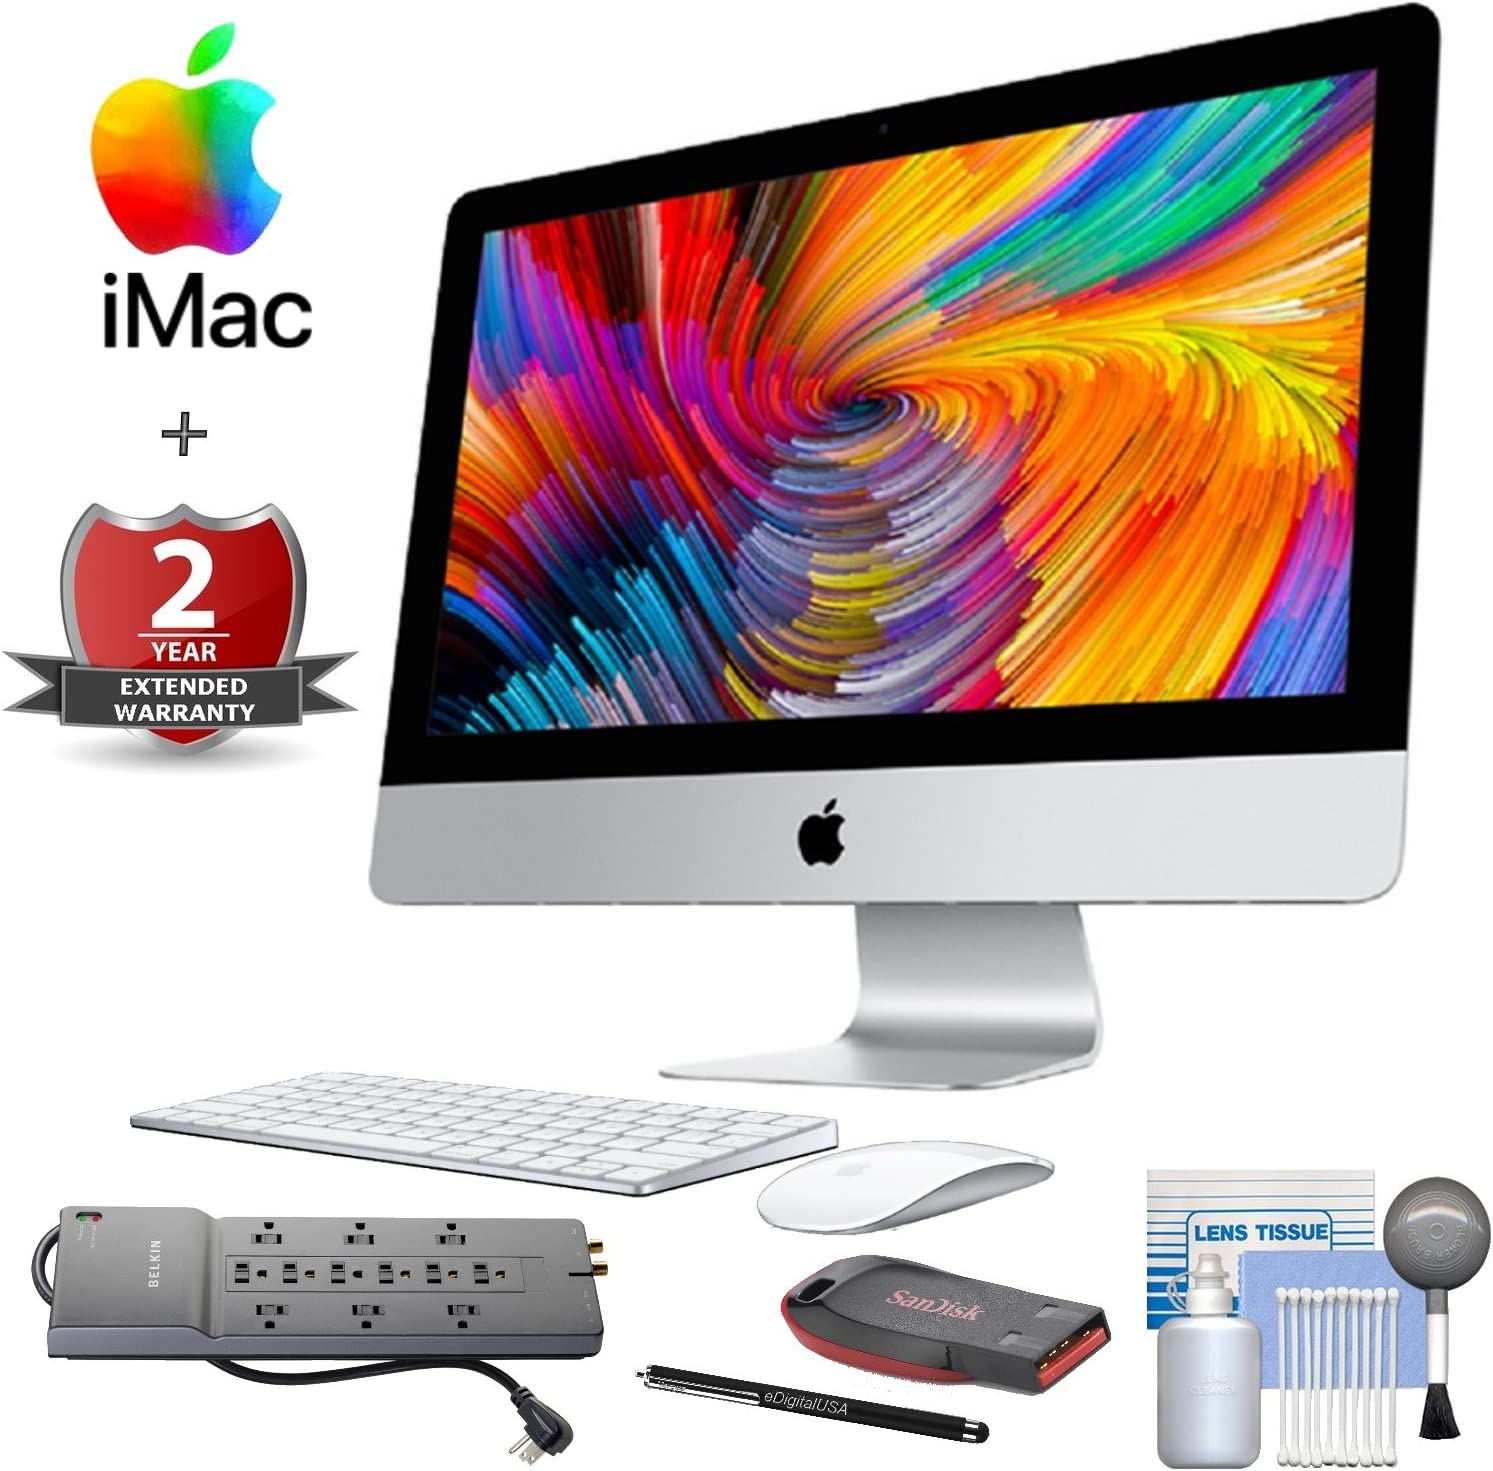 Looking For An Apple iMac? These Bundles Will Save You Cash